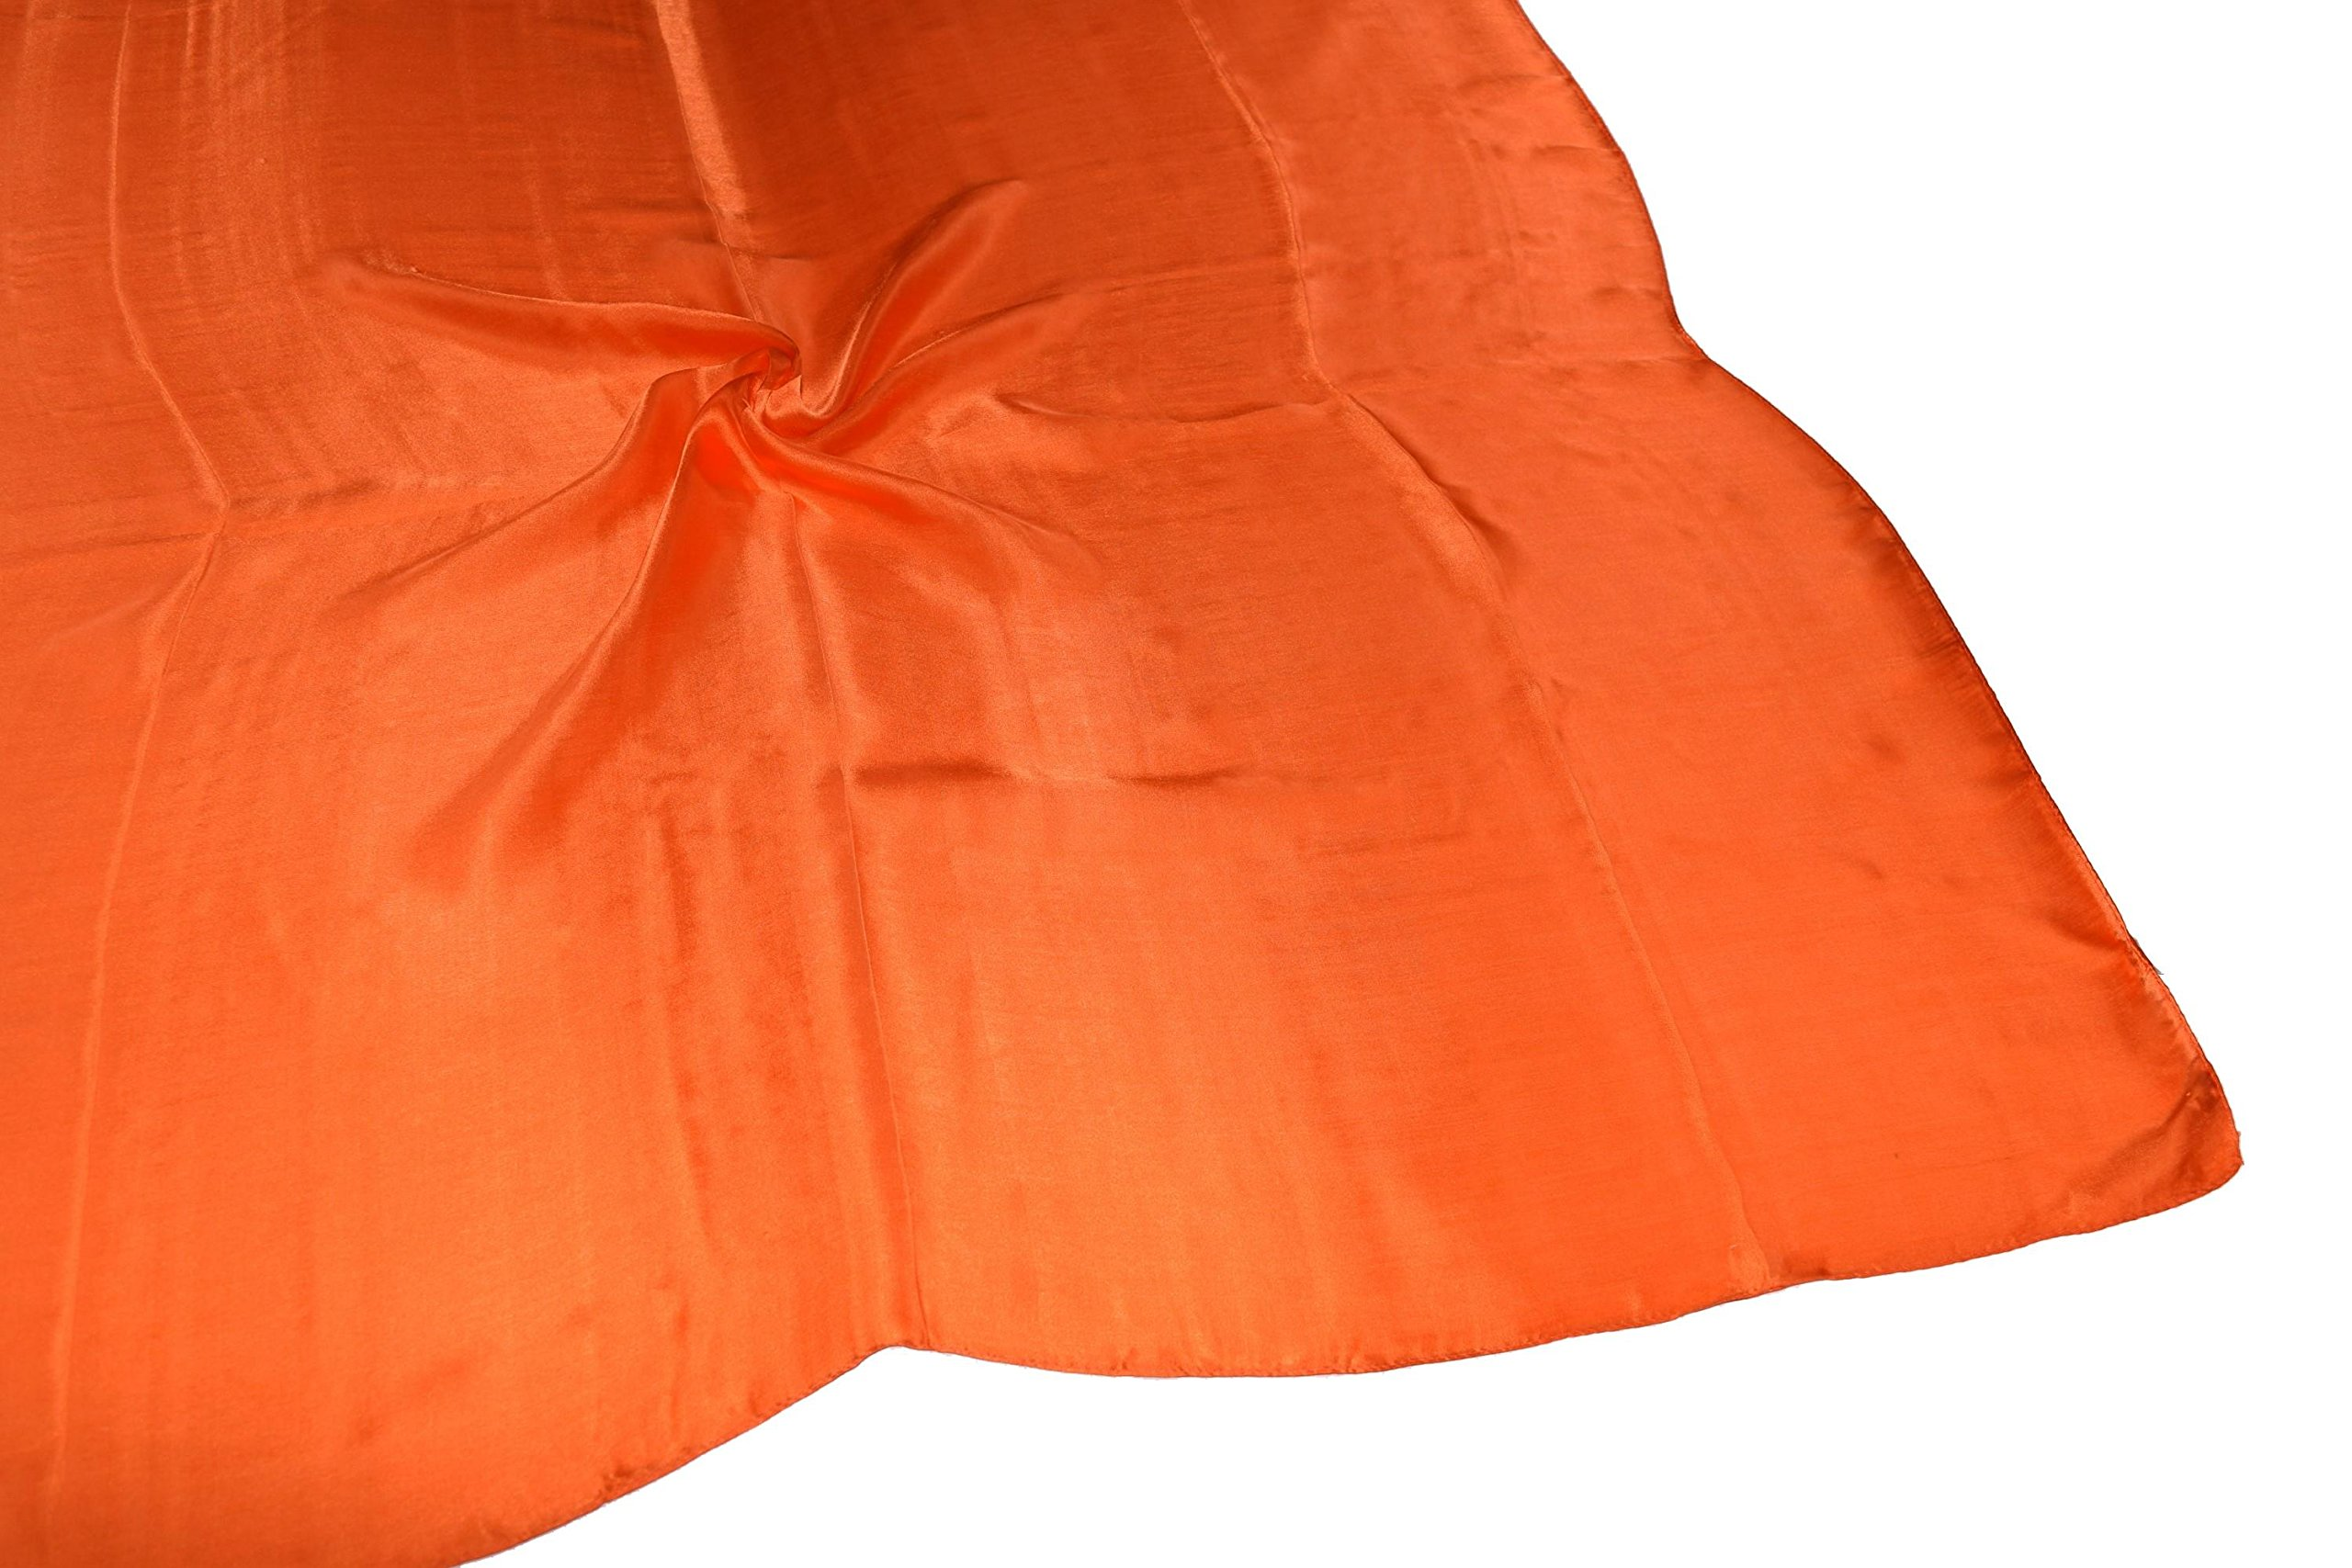 Orange Fine Silk Square Scarf by Bees Knees Fashion (Image #4)